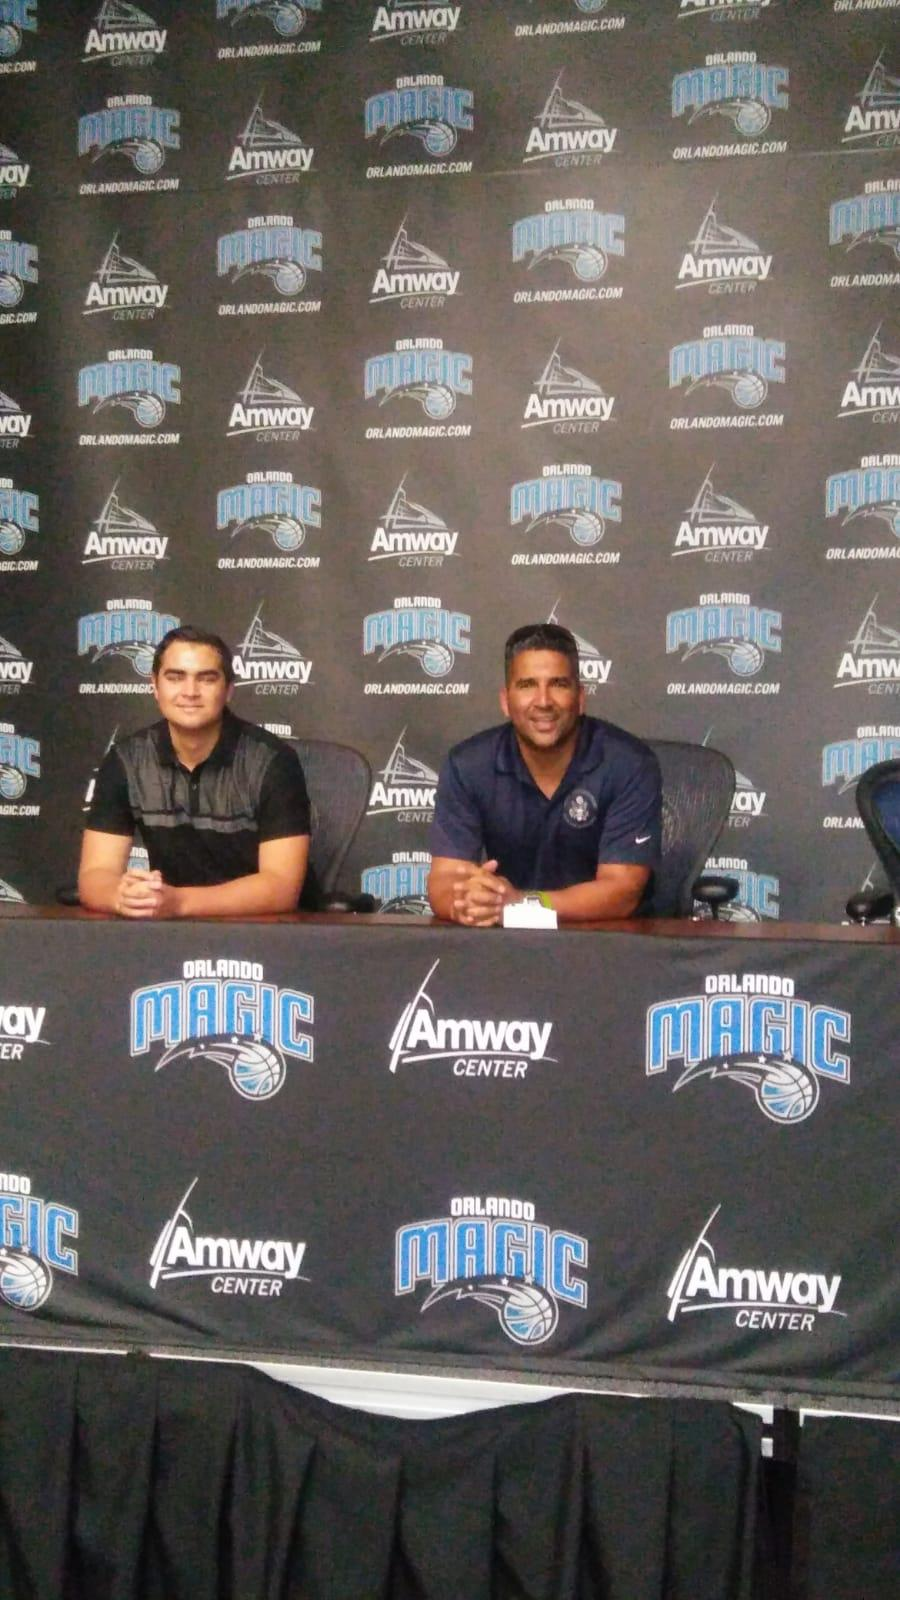 Not all is work: EEC Solutions Visited the Orlando Magic NBA Team